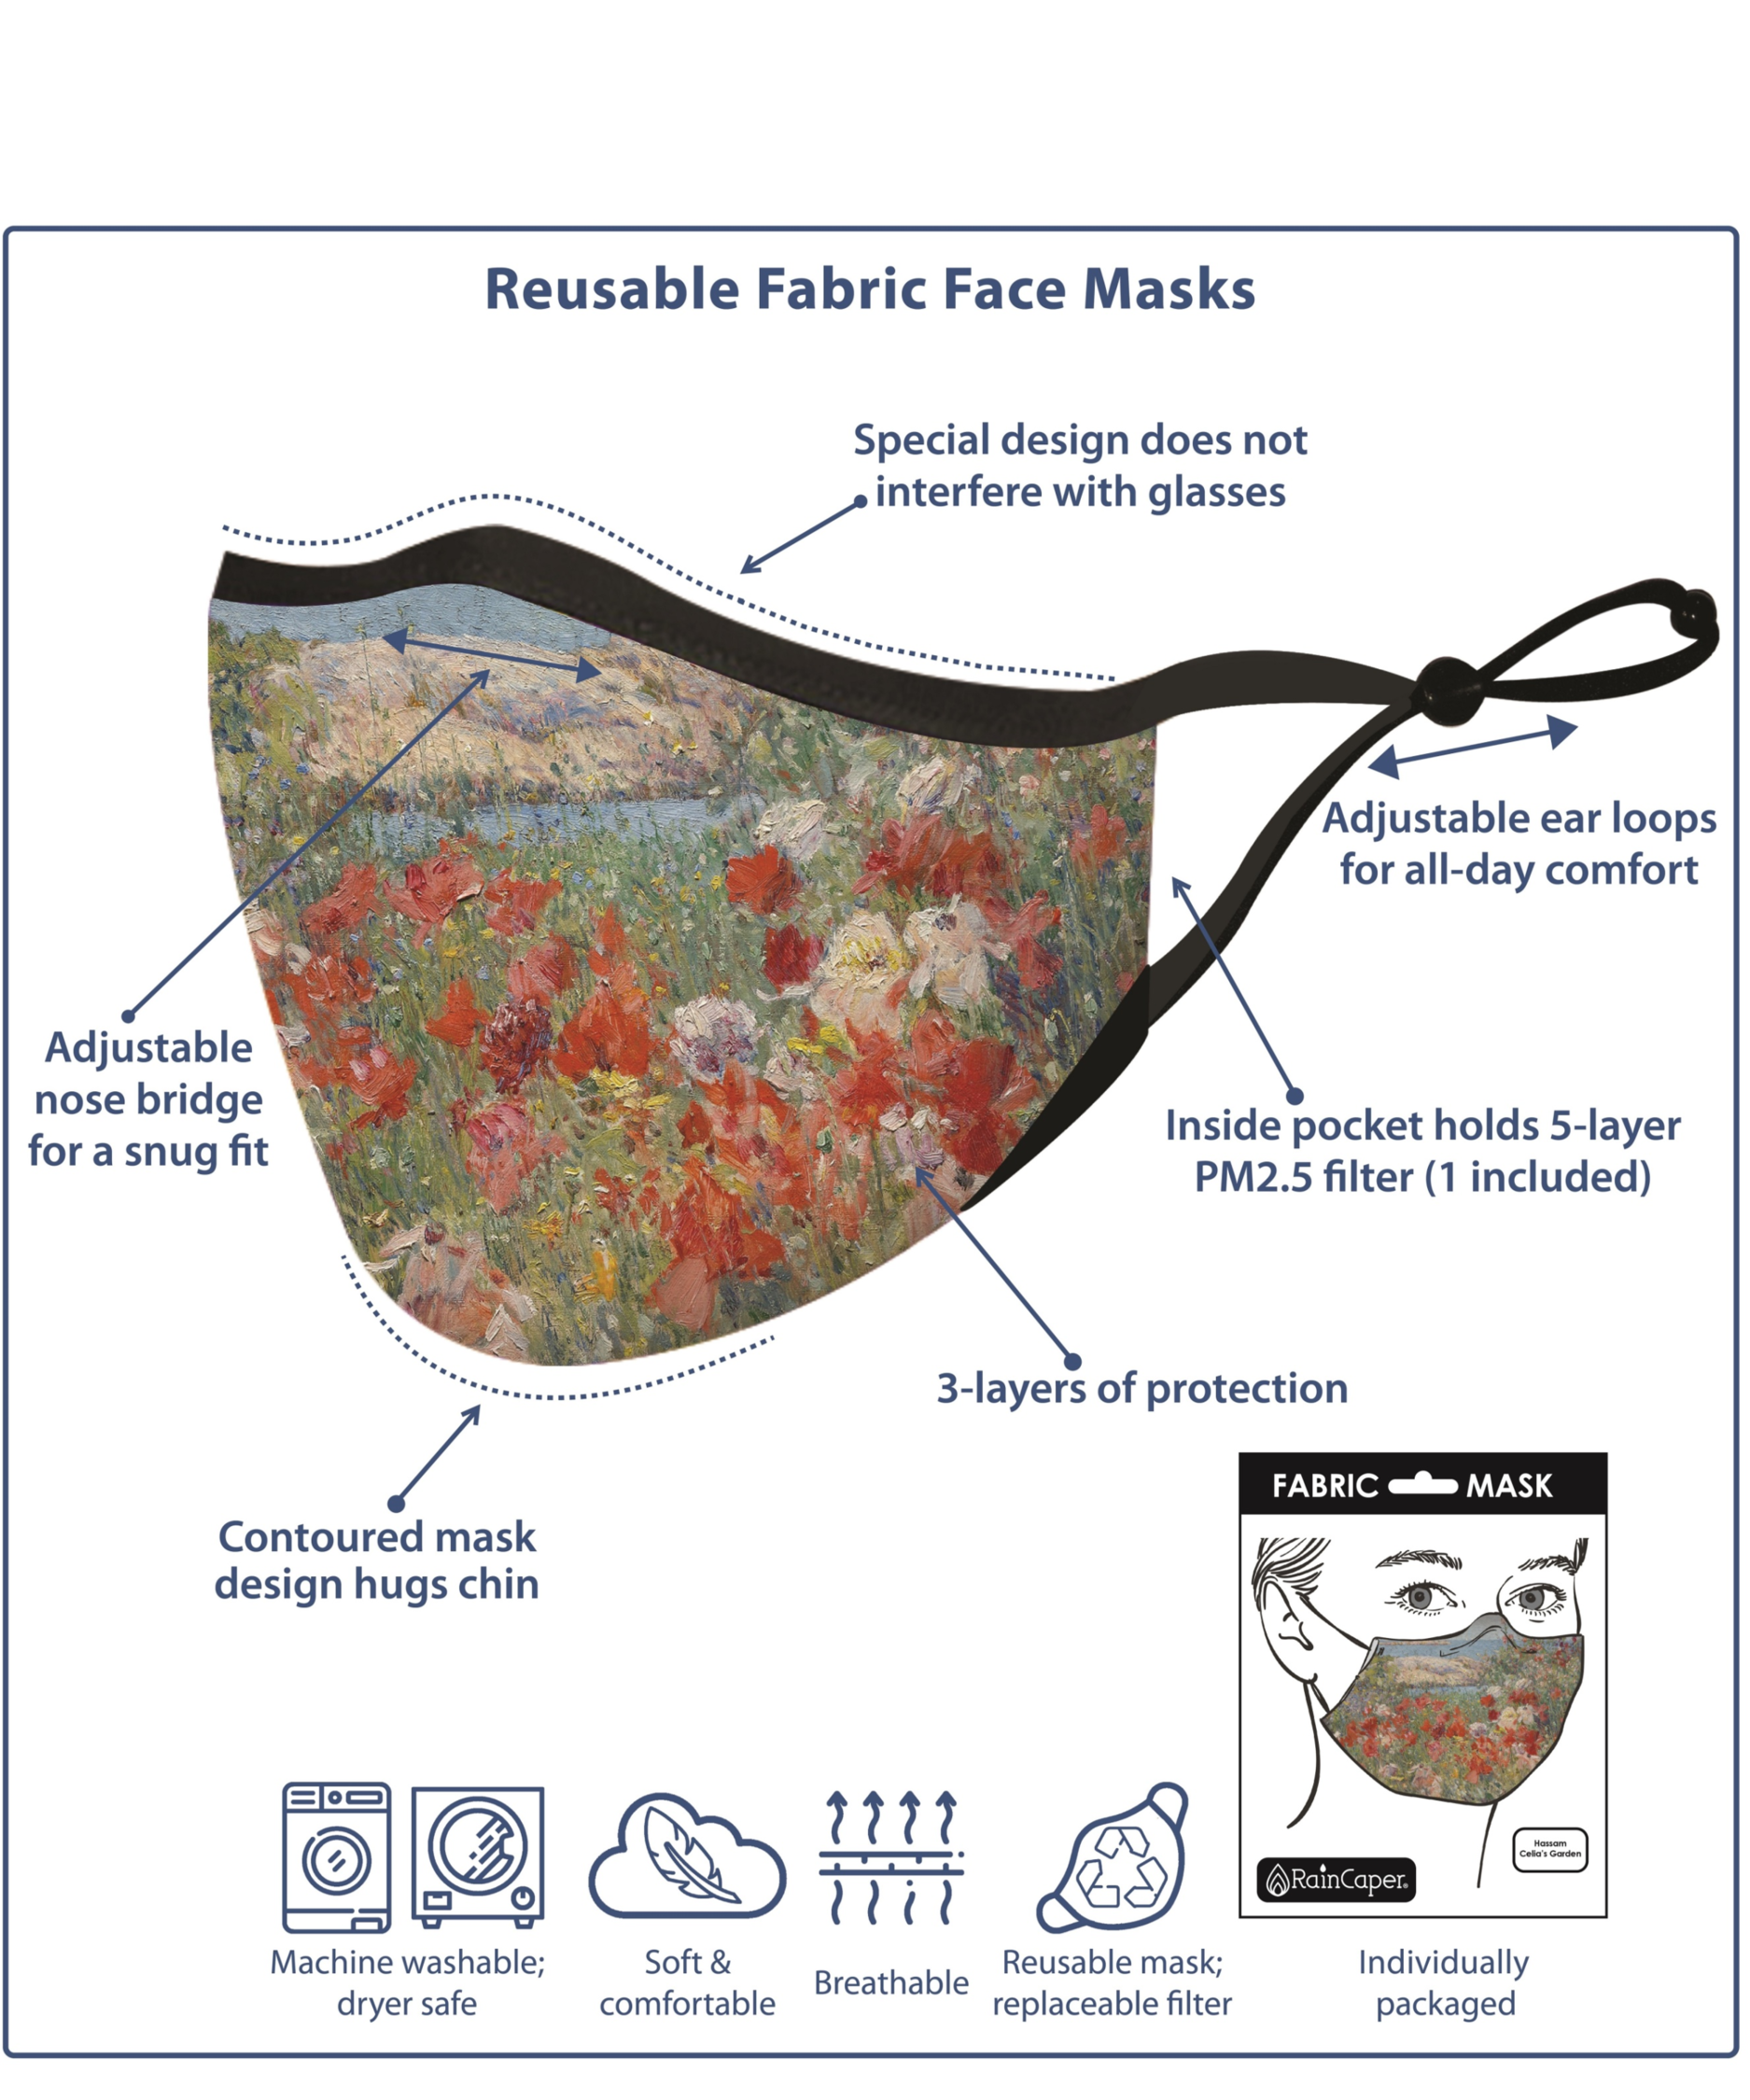 Van Gogh's Starry Night Over the Rhone Reusable Fabric Face Mask